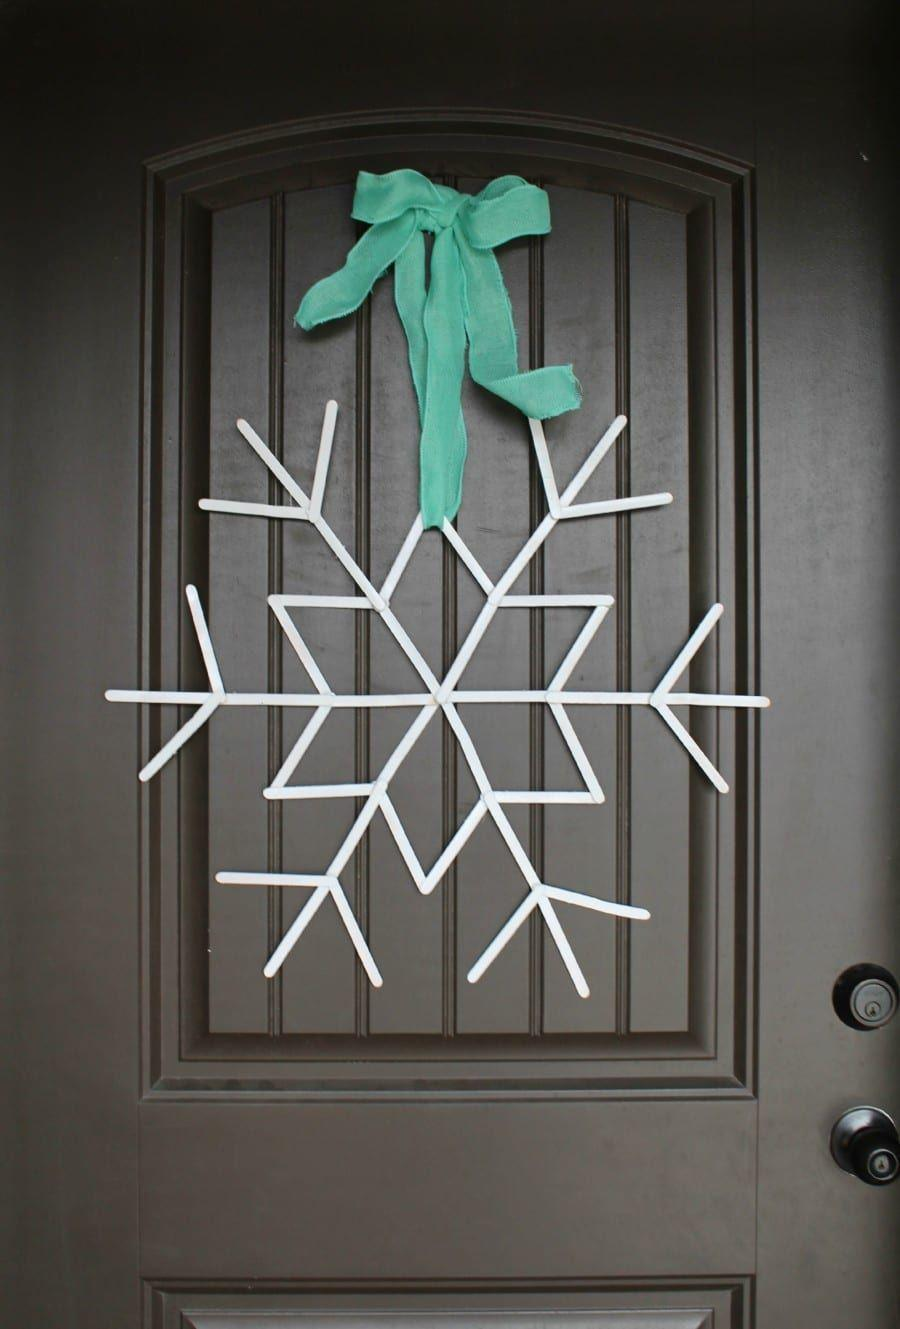 "<p>Arrange popsicle sticks in various unique shapes — every snowflake is different after all! — and secure with hot glue. Cluster your snowflakes as a wallhanging, hang a large one on the door as a wreath ... there are endless possibilities for your custom creations.</p><p><em><a href=""https://www.agirlandagluegun.com/2015/12/popsicle-sticks-snowflakes-sugar-bee.html"" rel=""nofollow noopener"" target=""_blank"" data-ylk=""slk:Get the tutorial at A Girl and a Glue Gun»"" class=""link rapid-noclick-resp"">Get the tutorial at A Girl and a Glue Gun»</a></em></p><p><strong>RELATED</strong>: <a href=""https://www.goodhousekeeping.com/holidays/christmas-ideas/g2993/mason-jar-christmas-crafts/"" rel=""nofollow noopener"" target=""_blank"" data-ylk=""slk:16 Mason Jar Christmas Crafts to Make as Gifts (or Keep for Yourself)"" class=""link rapid-noclick-resp"">16 Mason Jar Christmas Crafts to Make as Gifts (or Keep for Yourself)</a><br></p>"